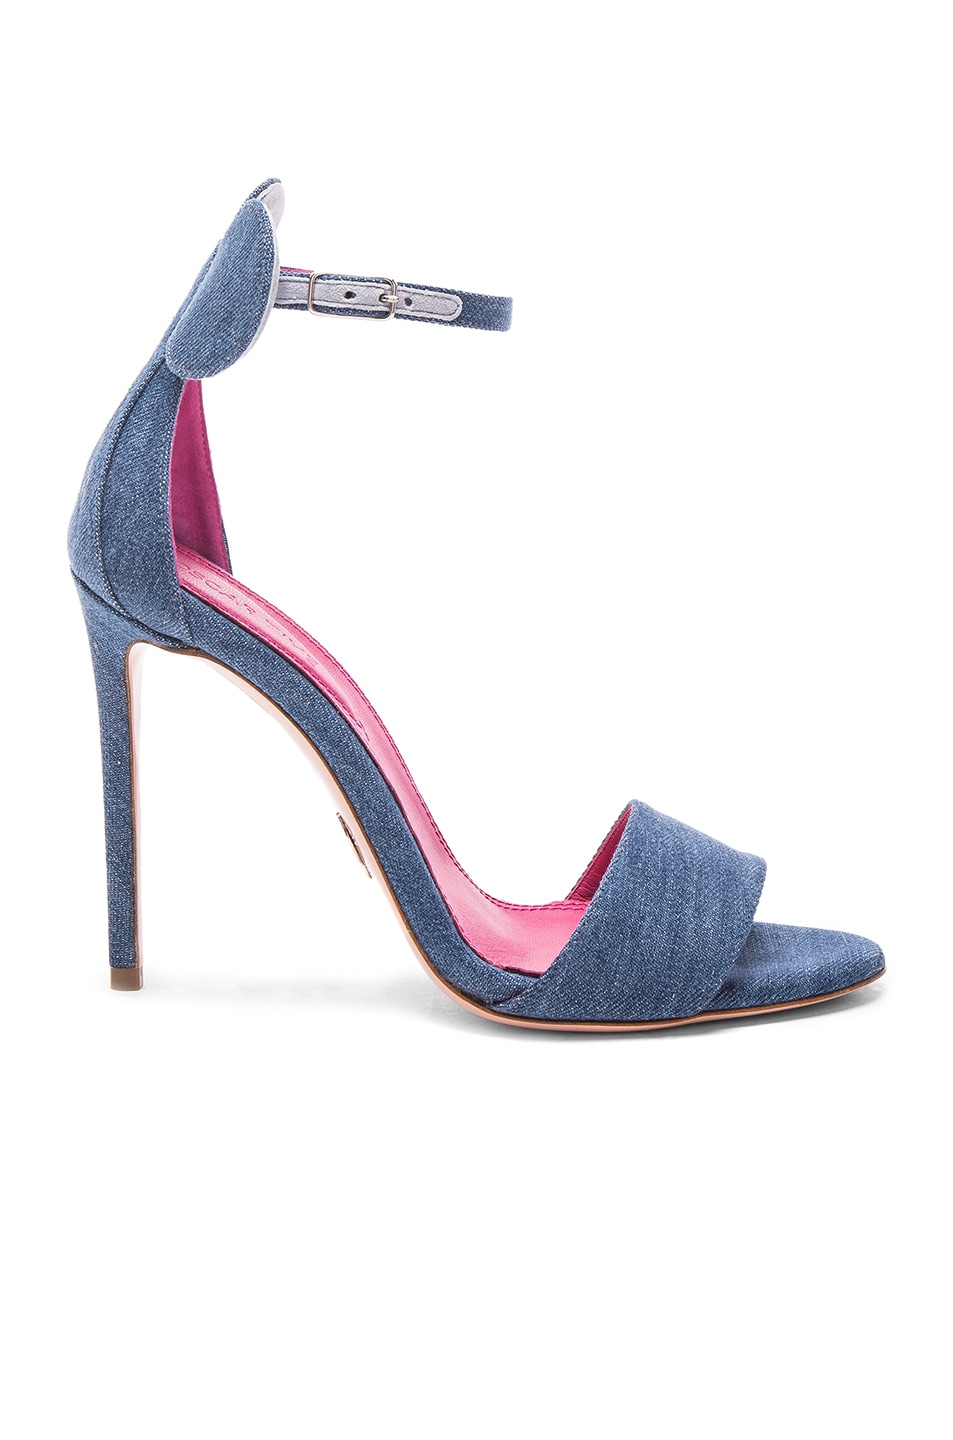 Image 1 of Oscar Tiye Denim Minnie Sandals in Blue Denim